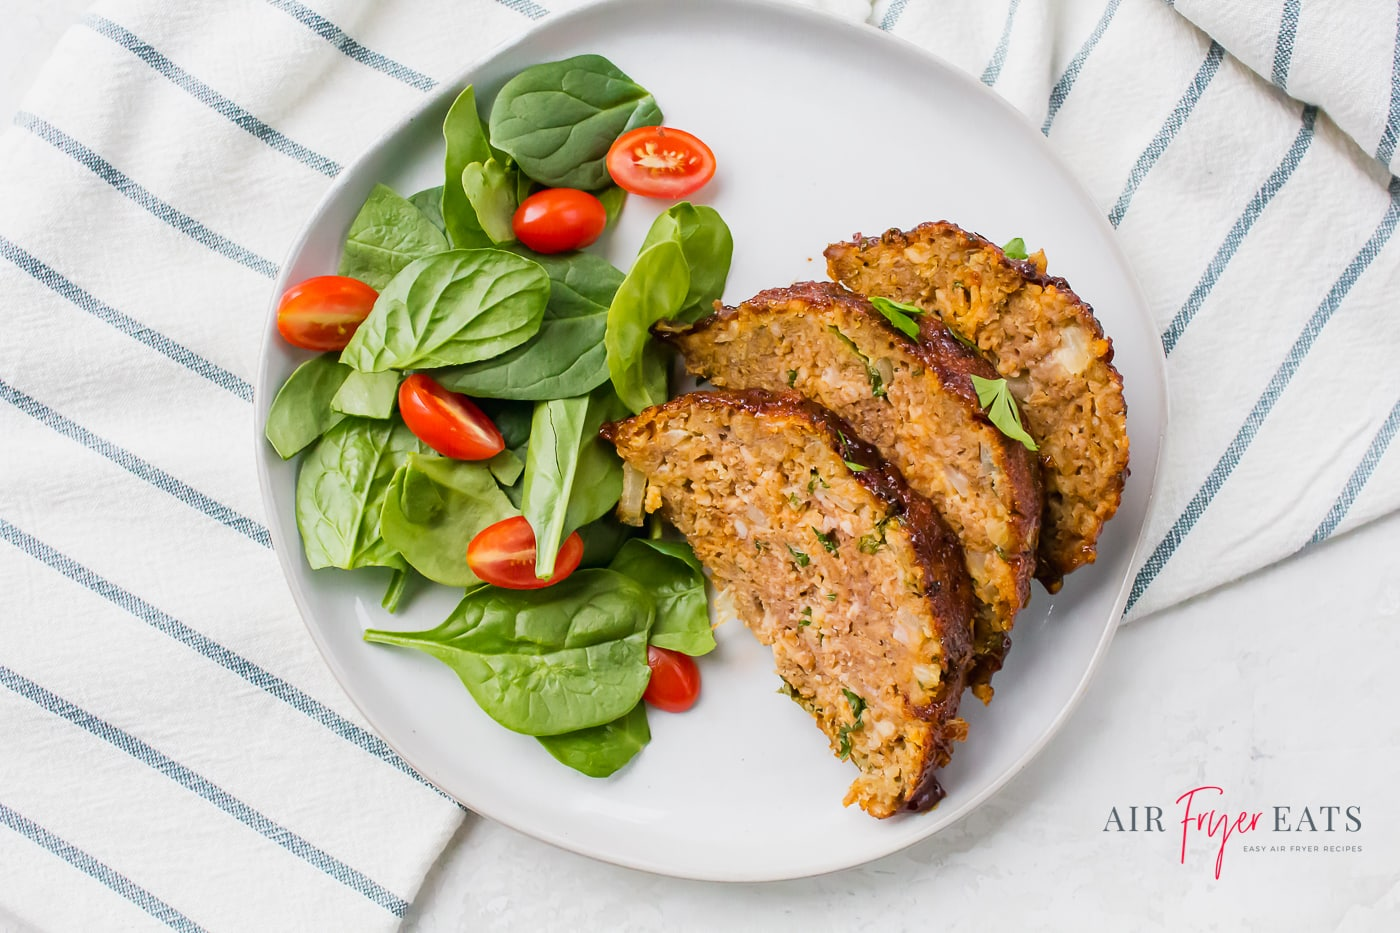 slices of meatloaf topped with herbs and arranged beside a spinach and tomato salad on a white plate